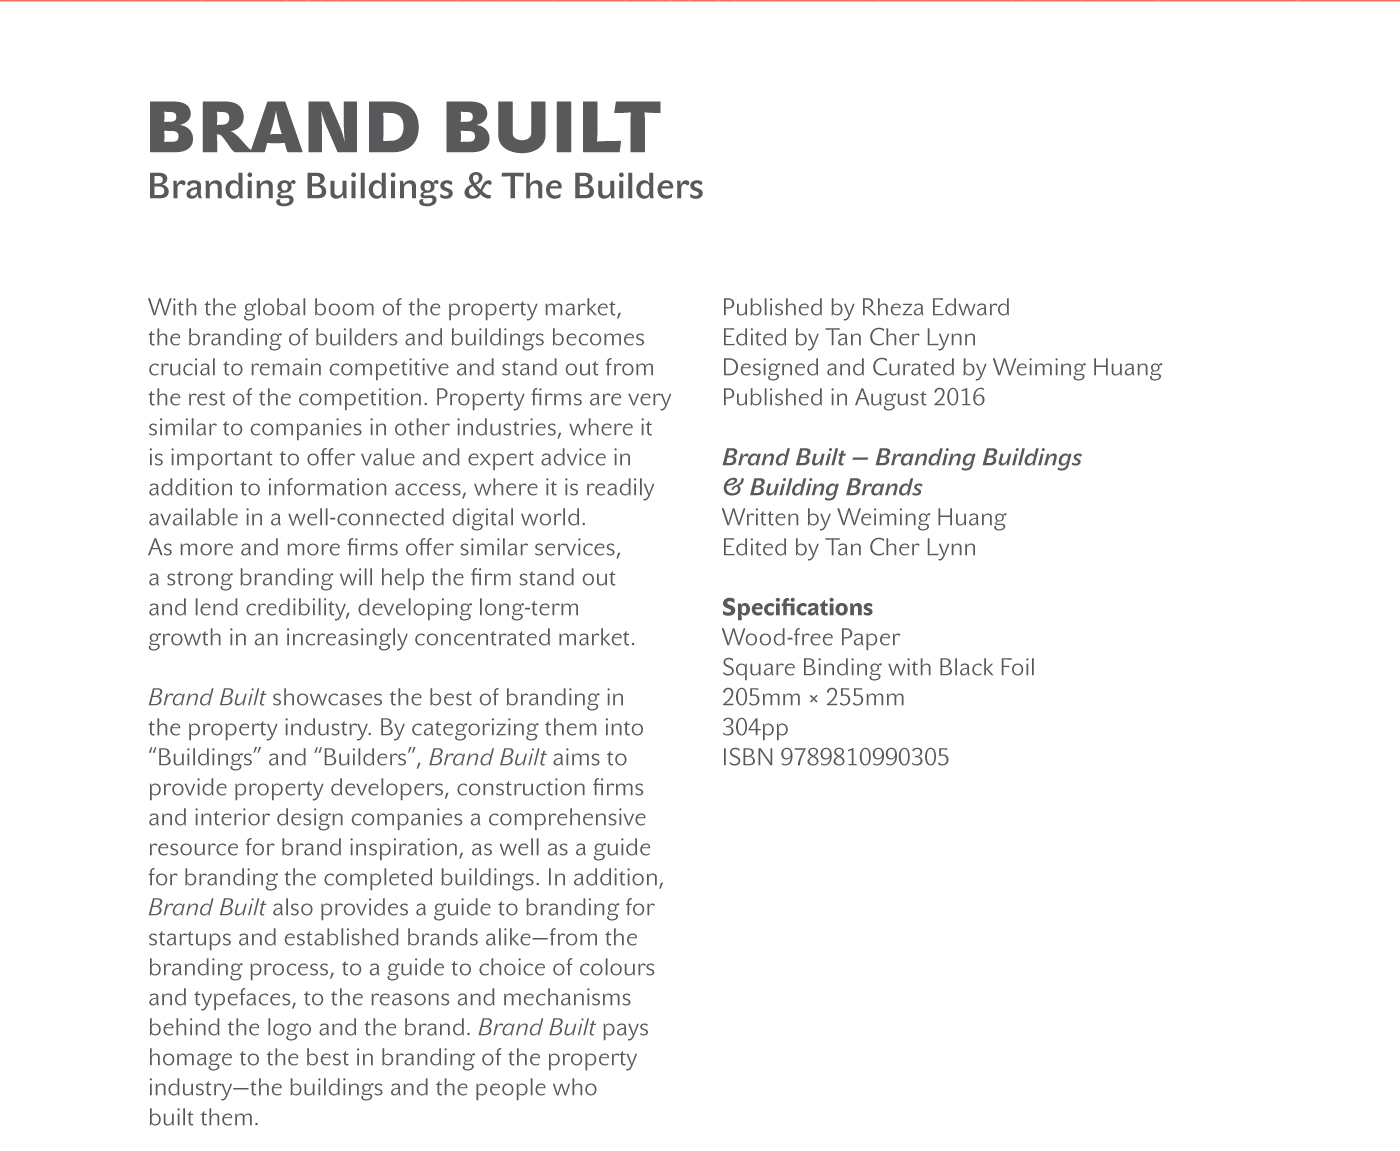 Brand Built — Branding Buildings & their Builders on Behance